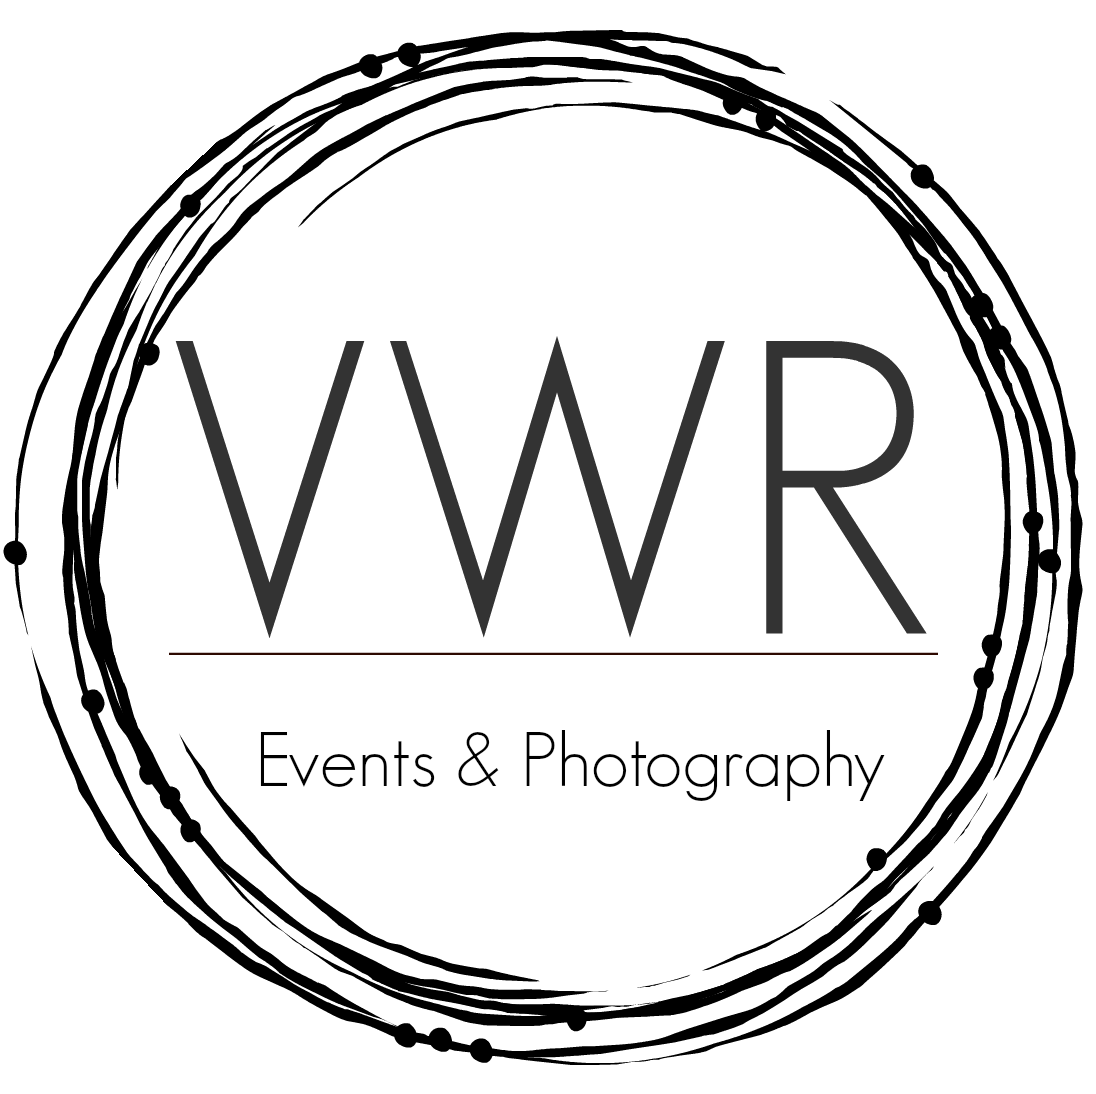 VWR Events & Photography image